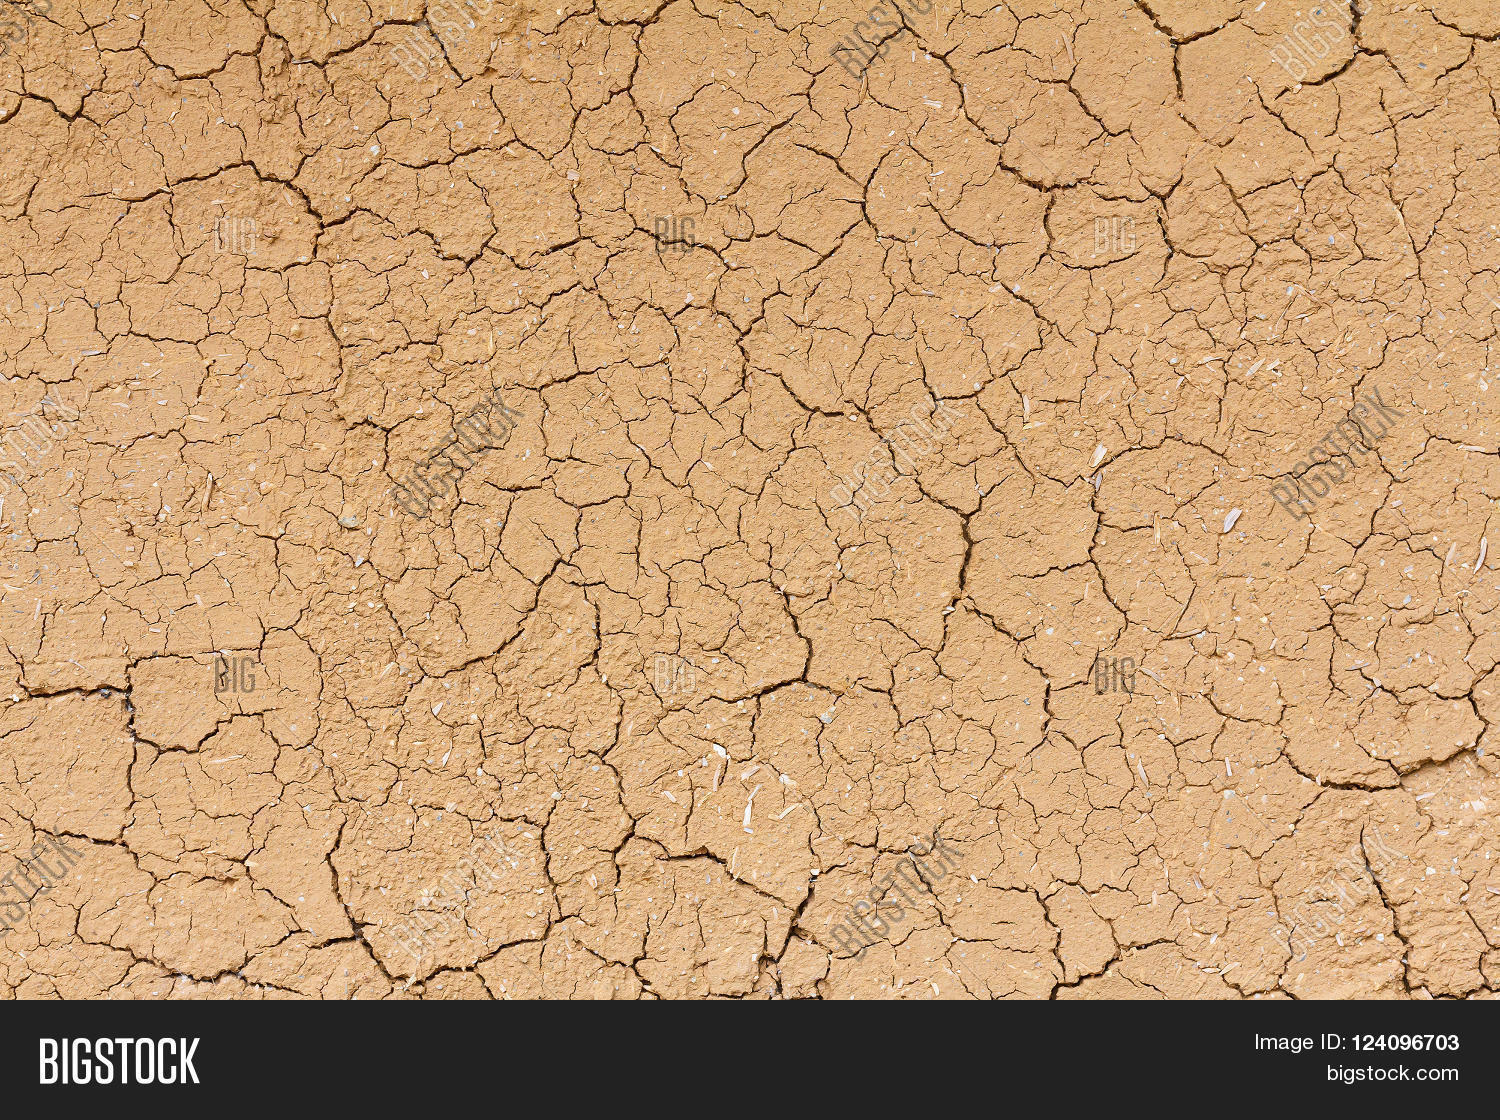 Cracked soil dry earth texture image photo bigstock for Earth or soil